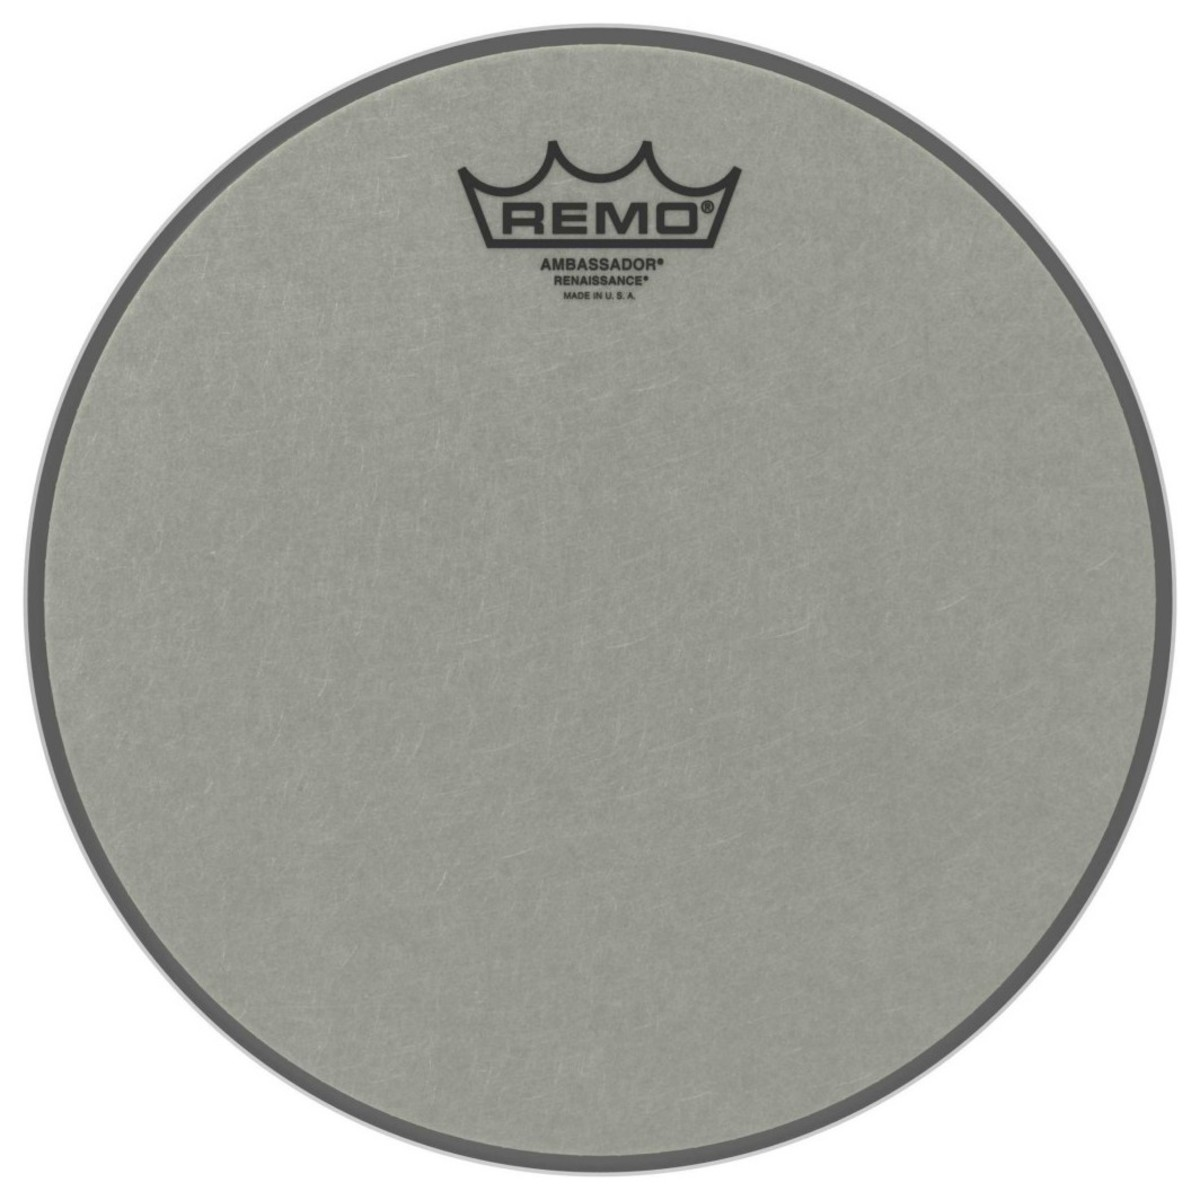 Click to view product details and reviews for Remo Ambassador Renaissance 12 Drum Head.